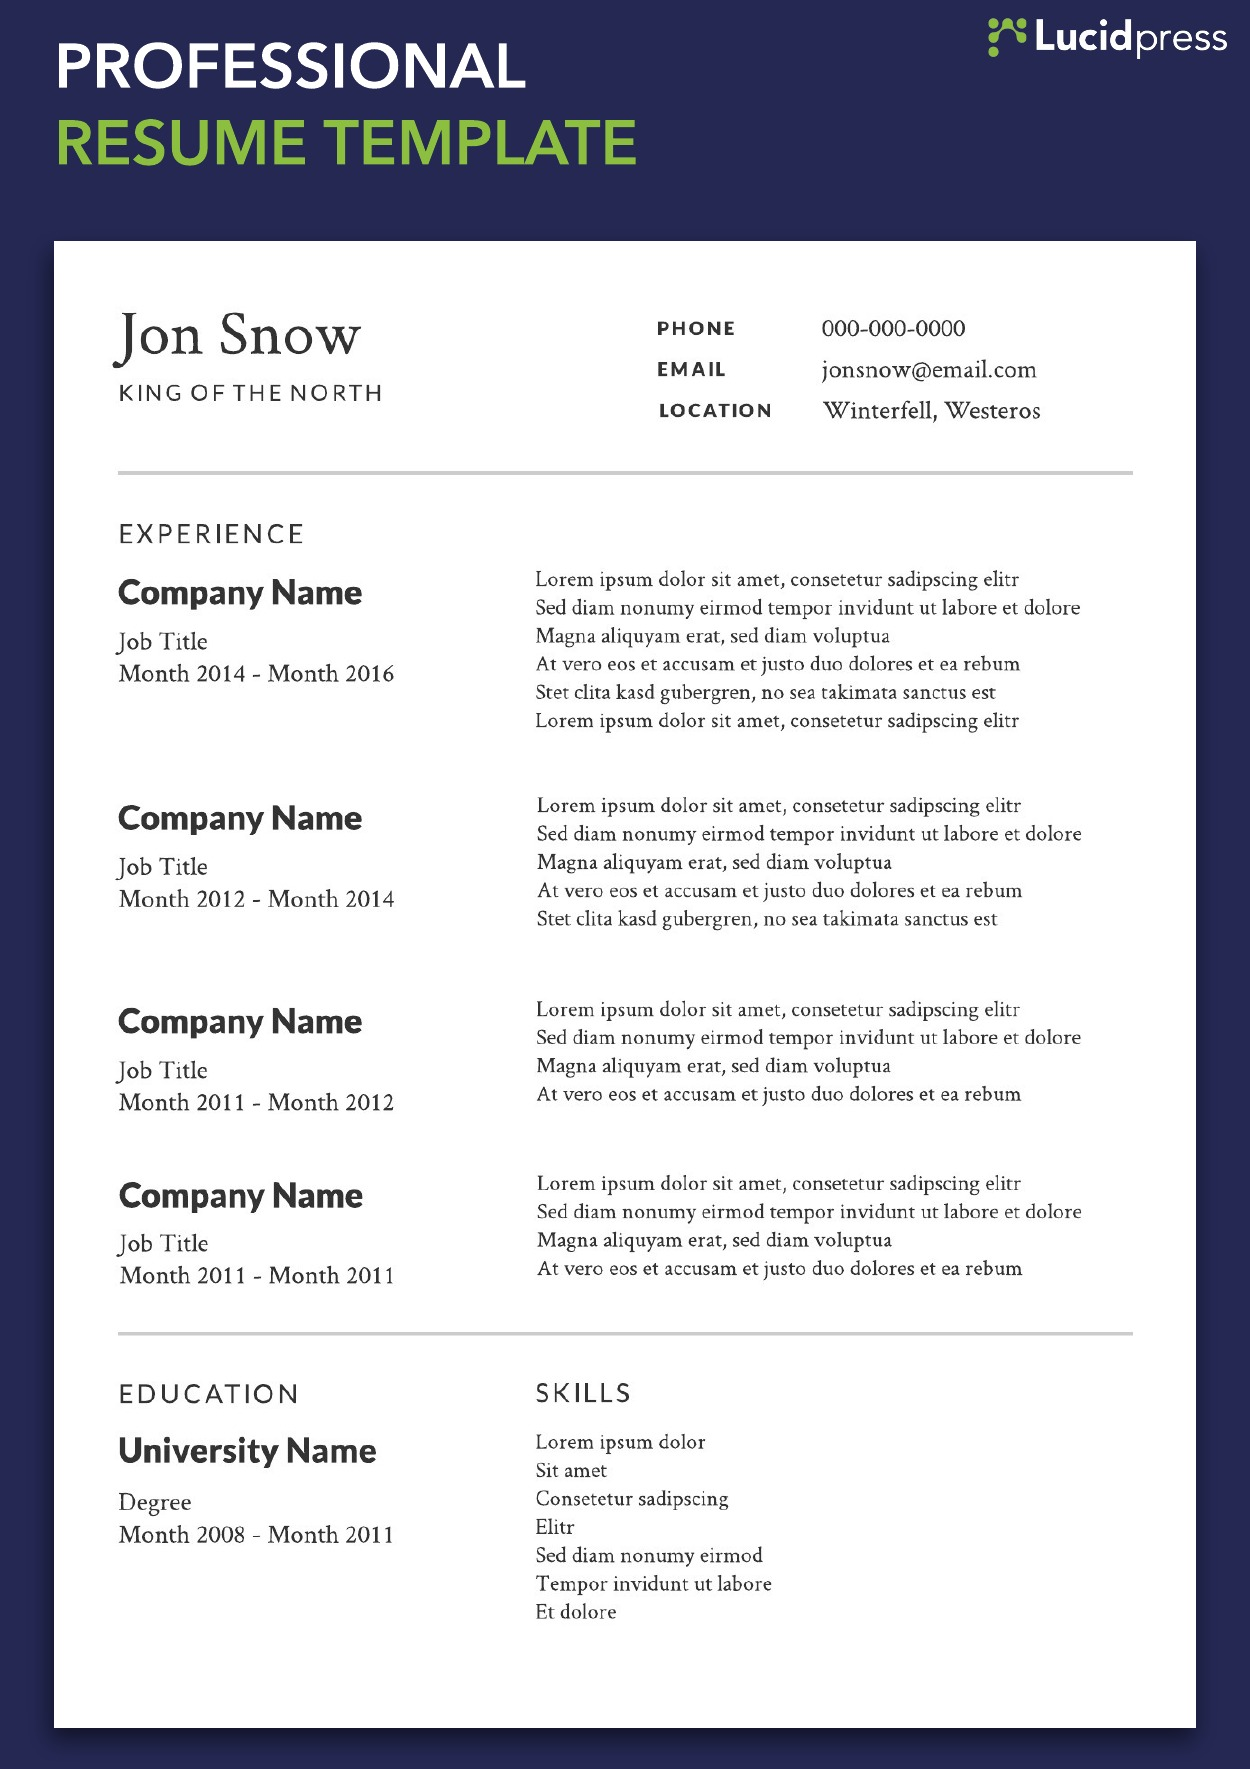 your resume formats guide for lucidpress current format professional template military Resume Current Resume Format 2019